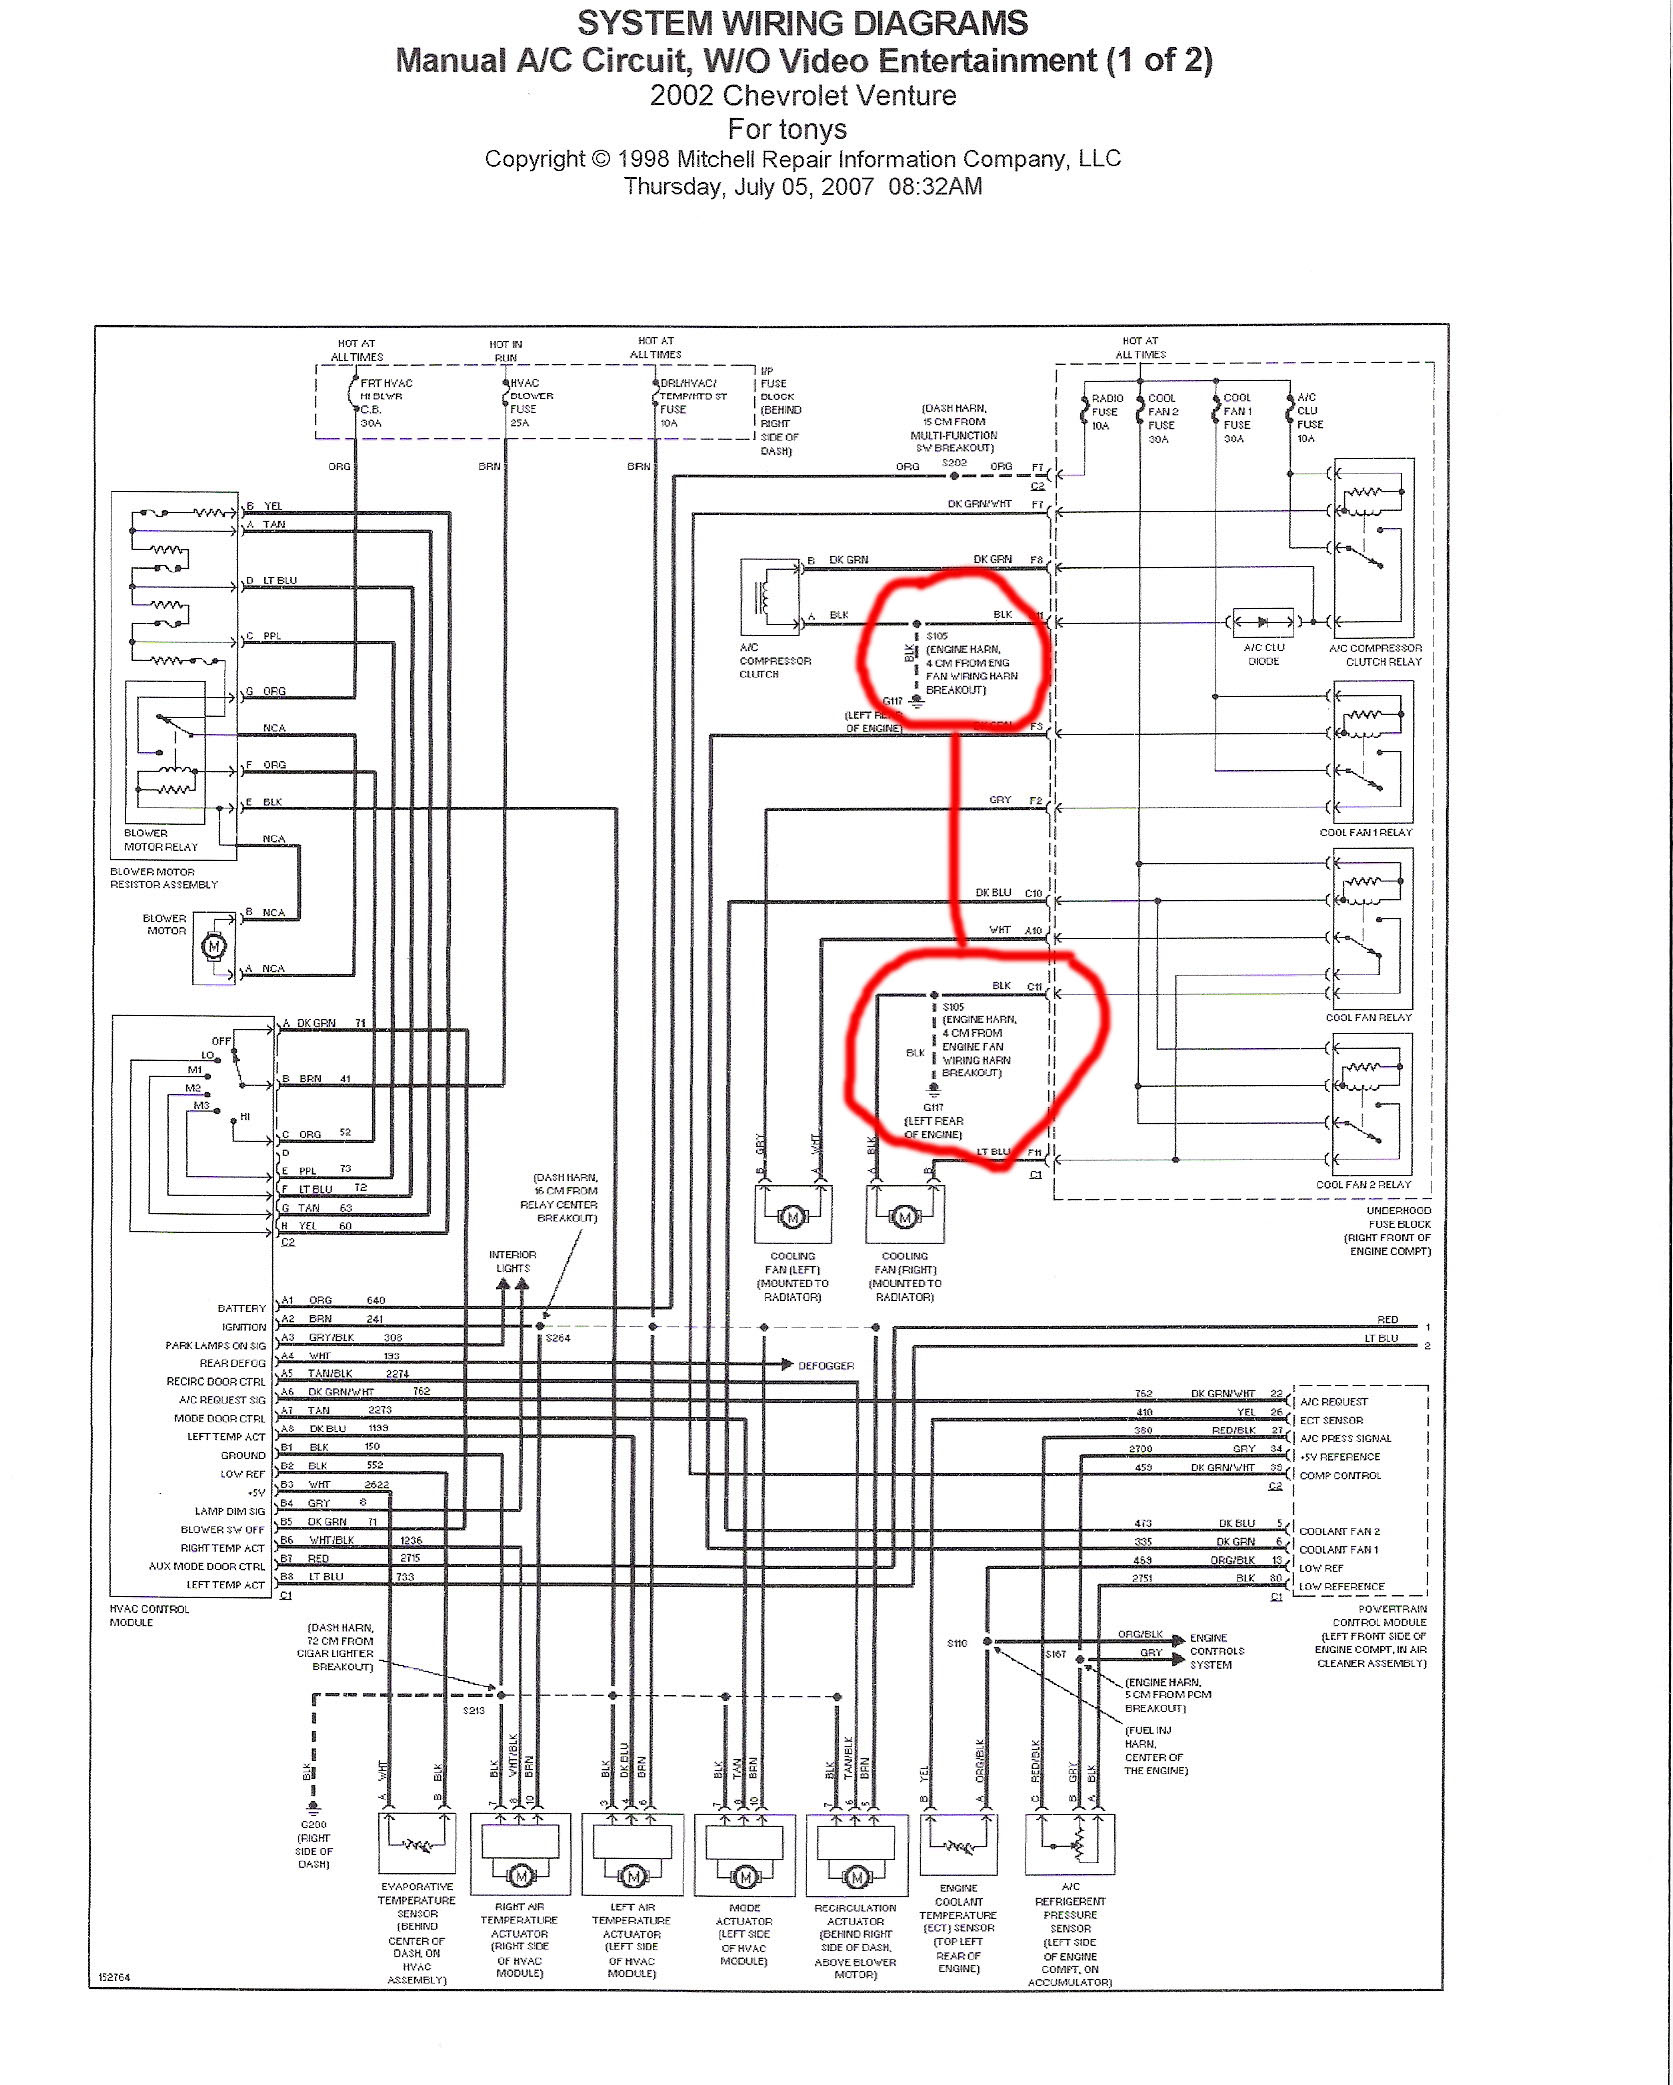 Chevy Cruze Wiring Diagram Air Temp